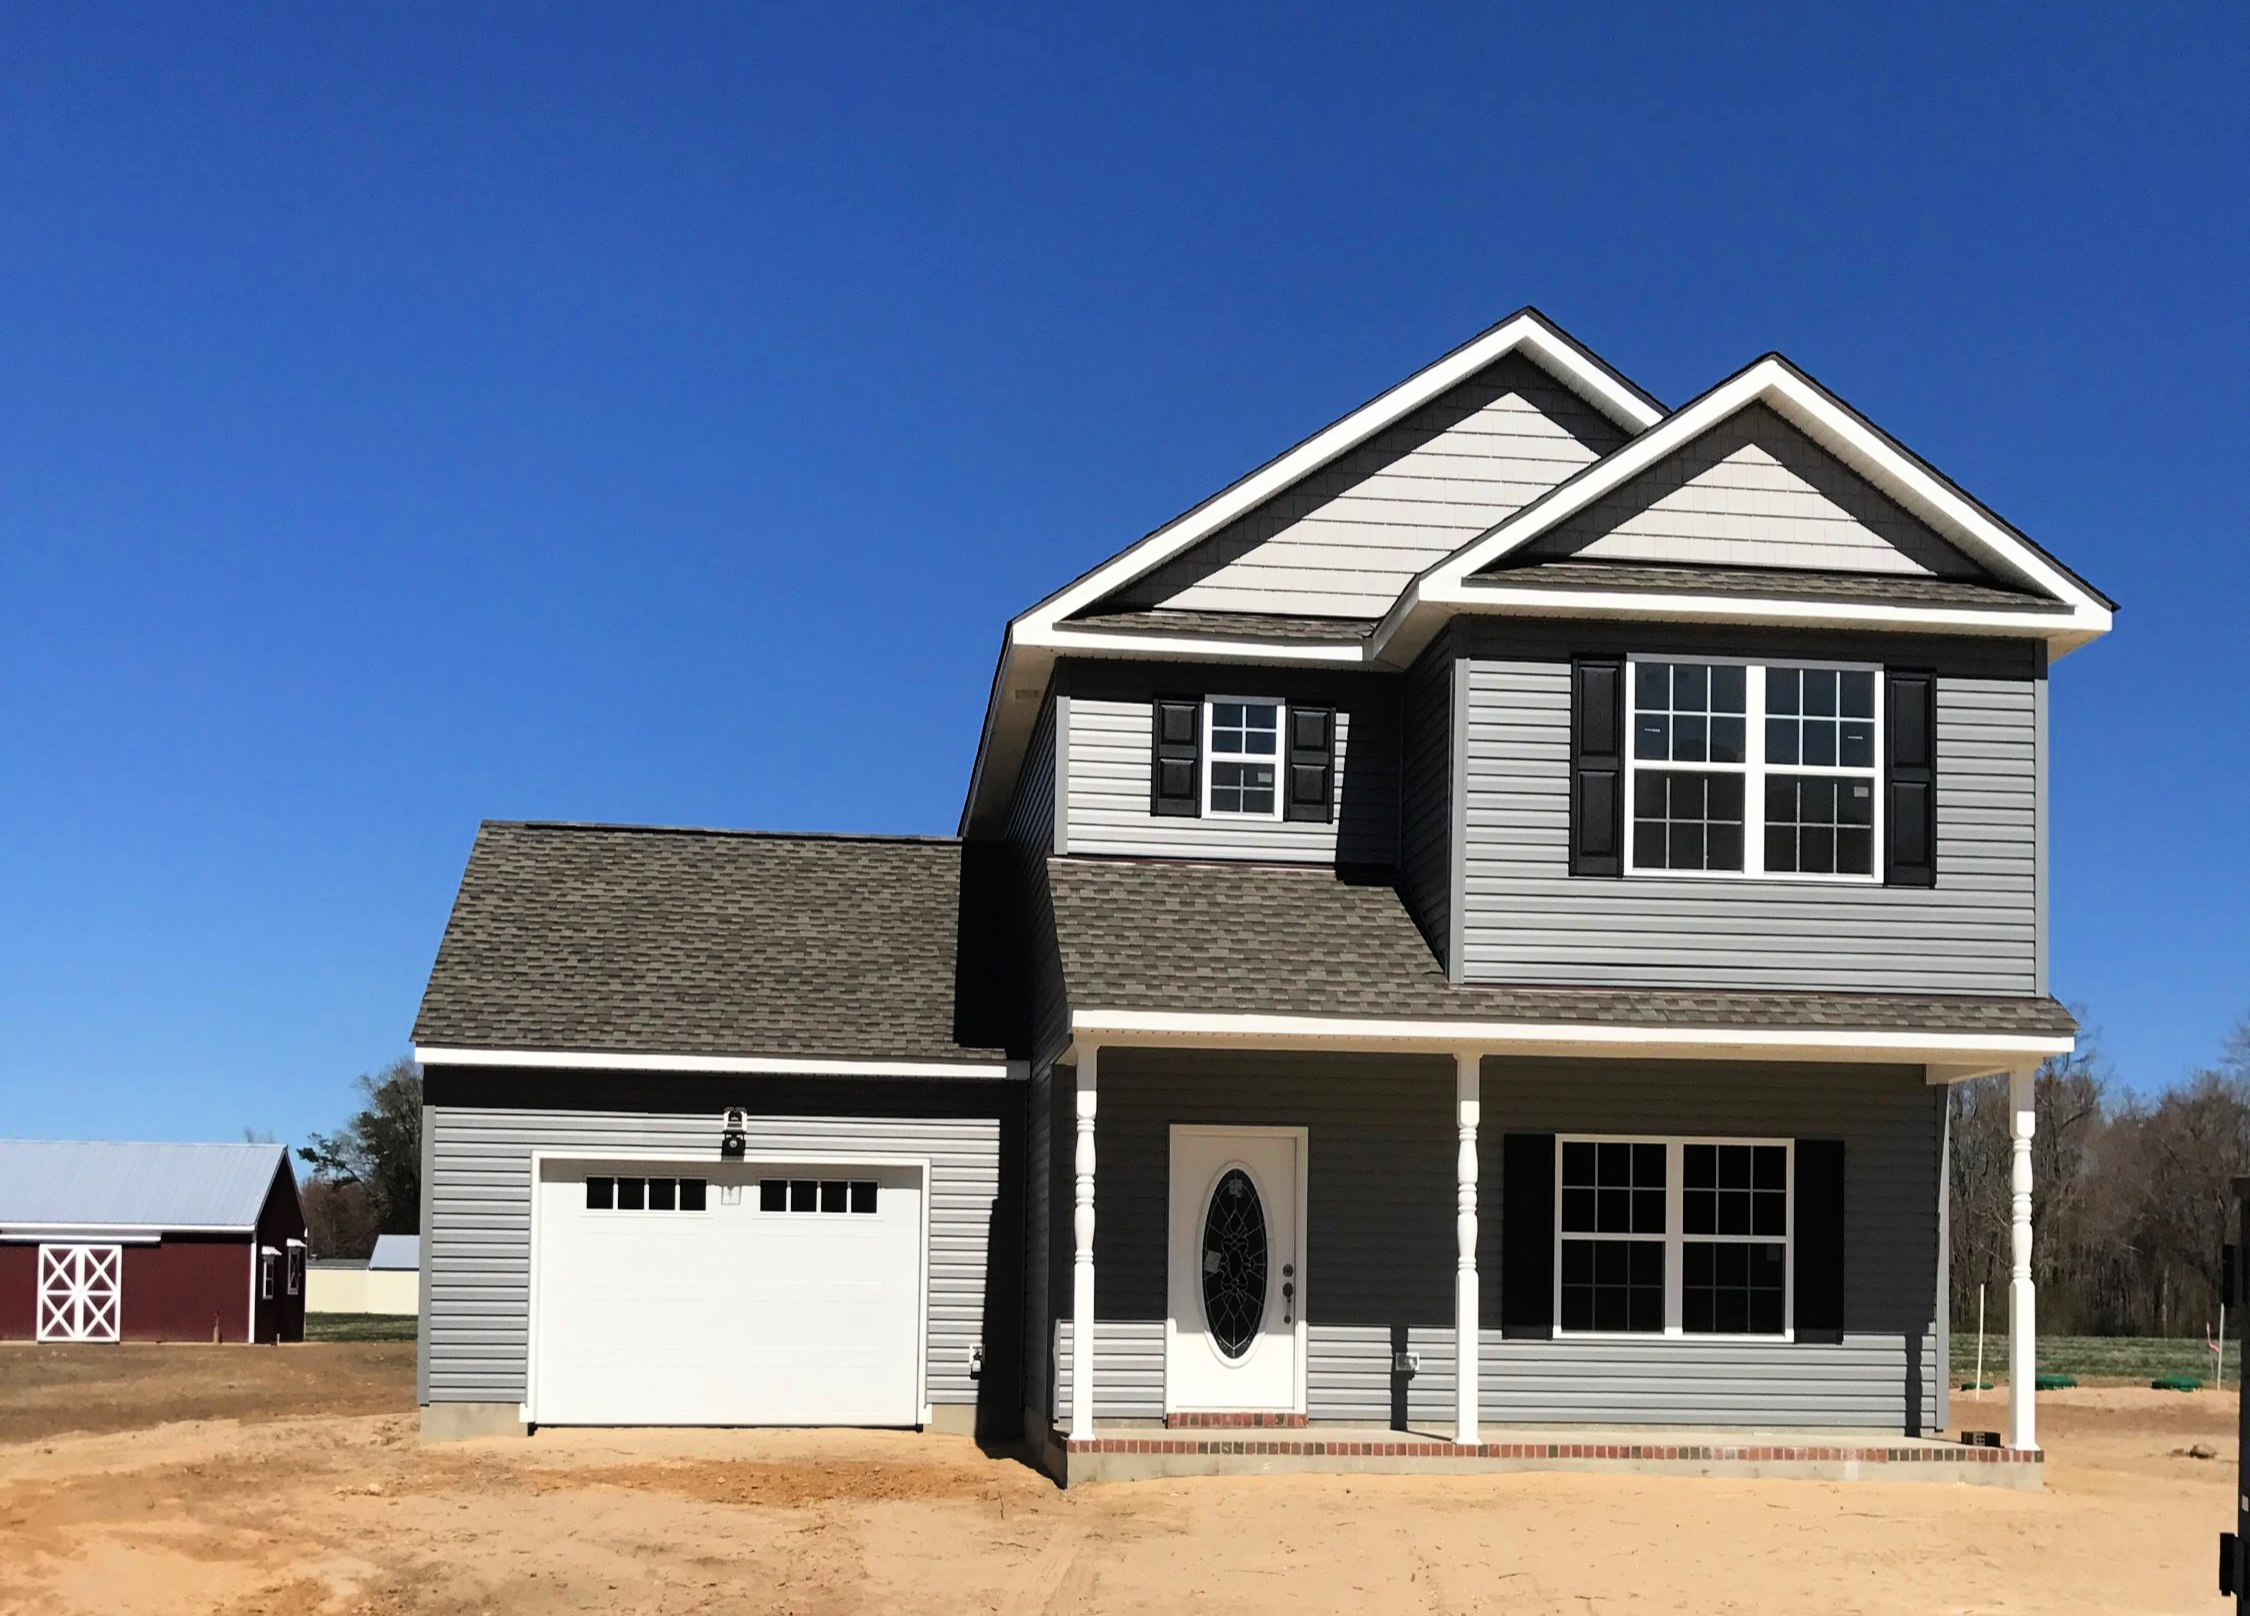 121 LITTLE FORK ROAD - NEW CONSTRUCTION ON 11 ACRES WITH A BARN IN SUFFOLK